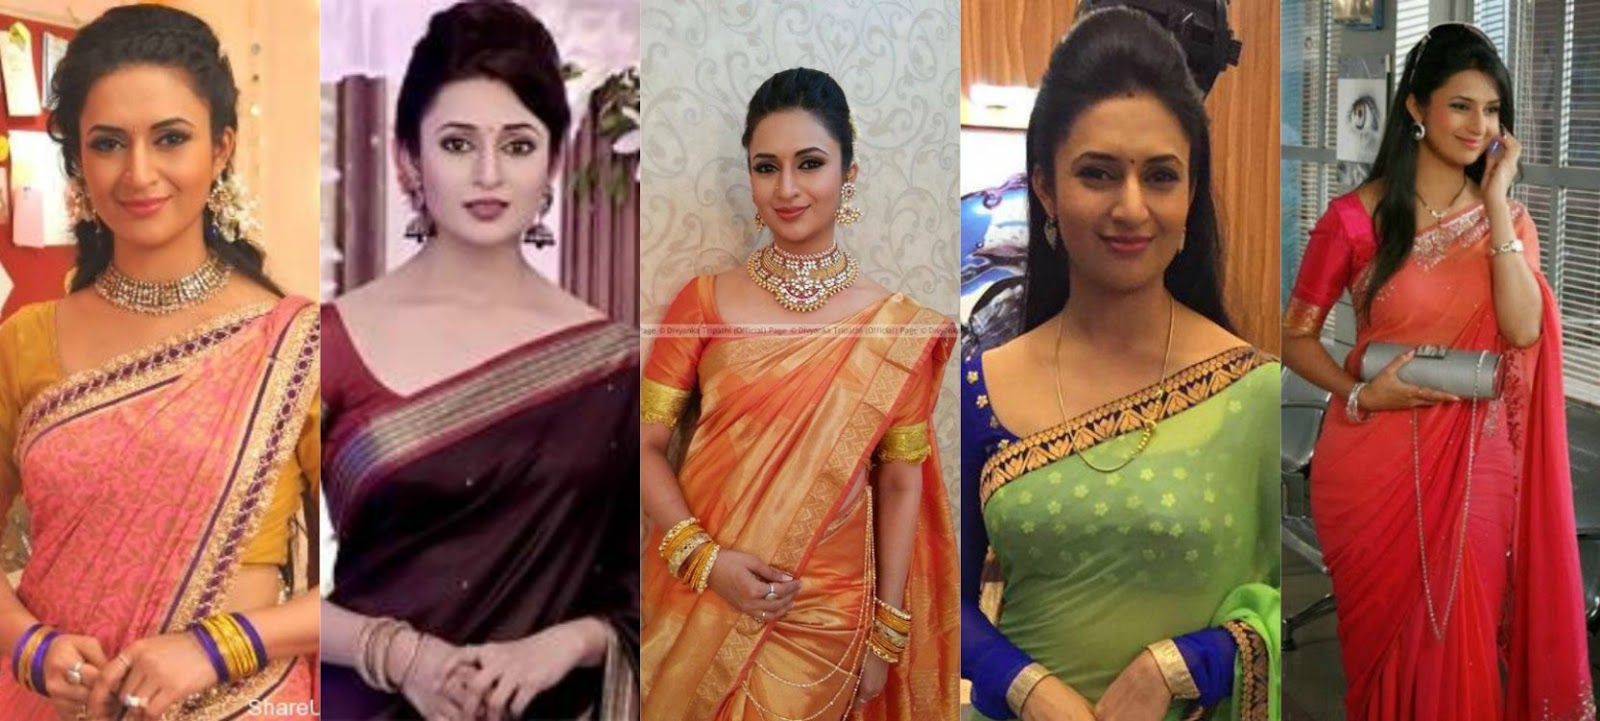 Top-5-Television-Actresses-to-Follow-for-Latest-Saree-Trends